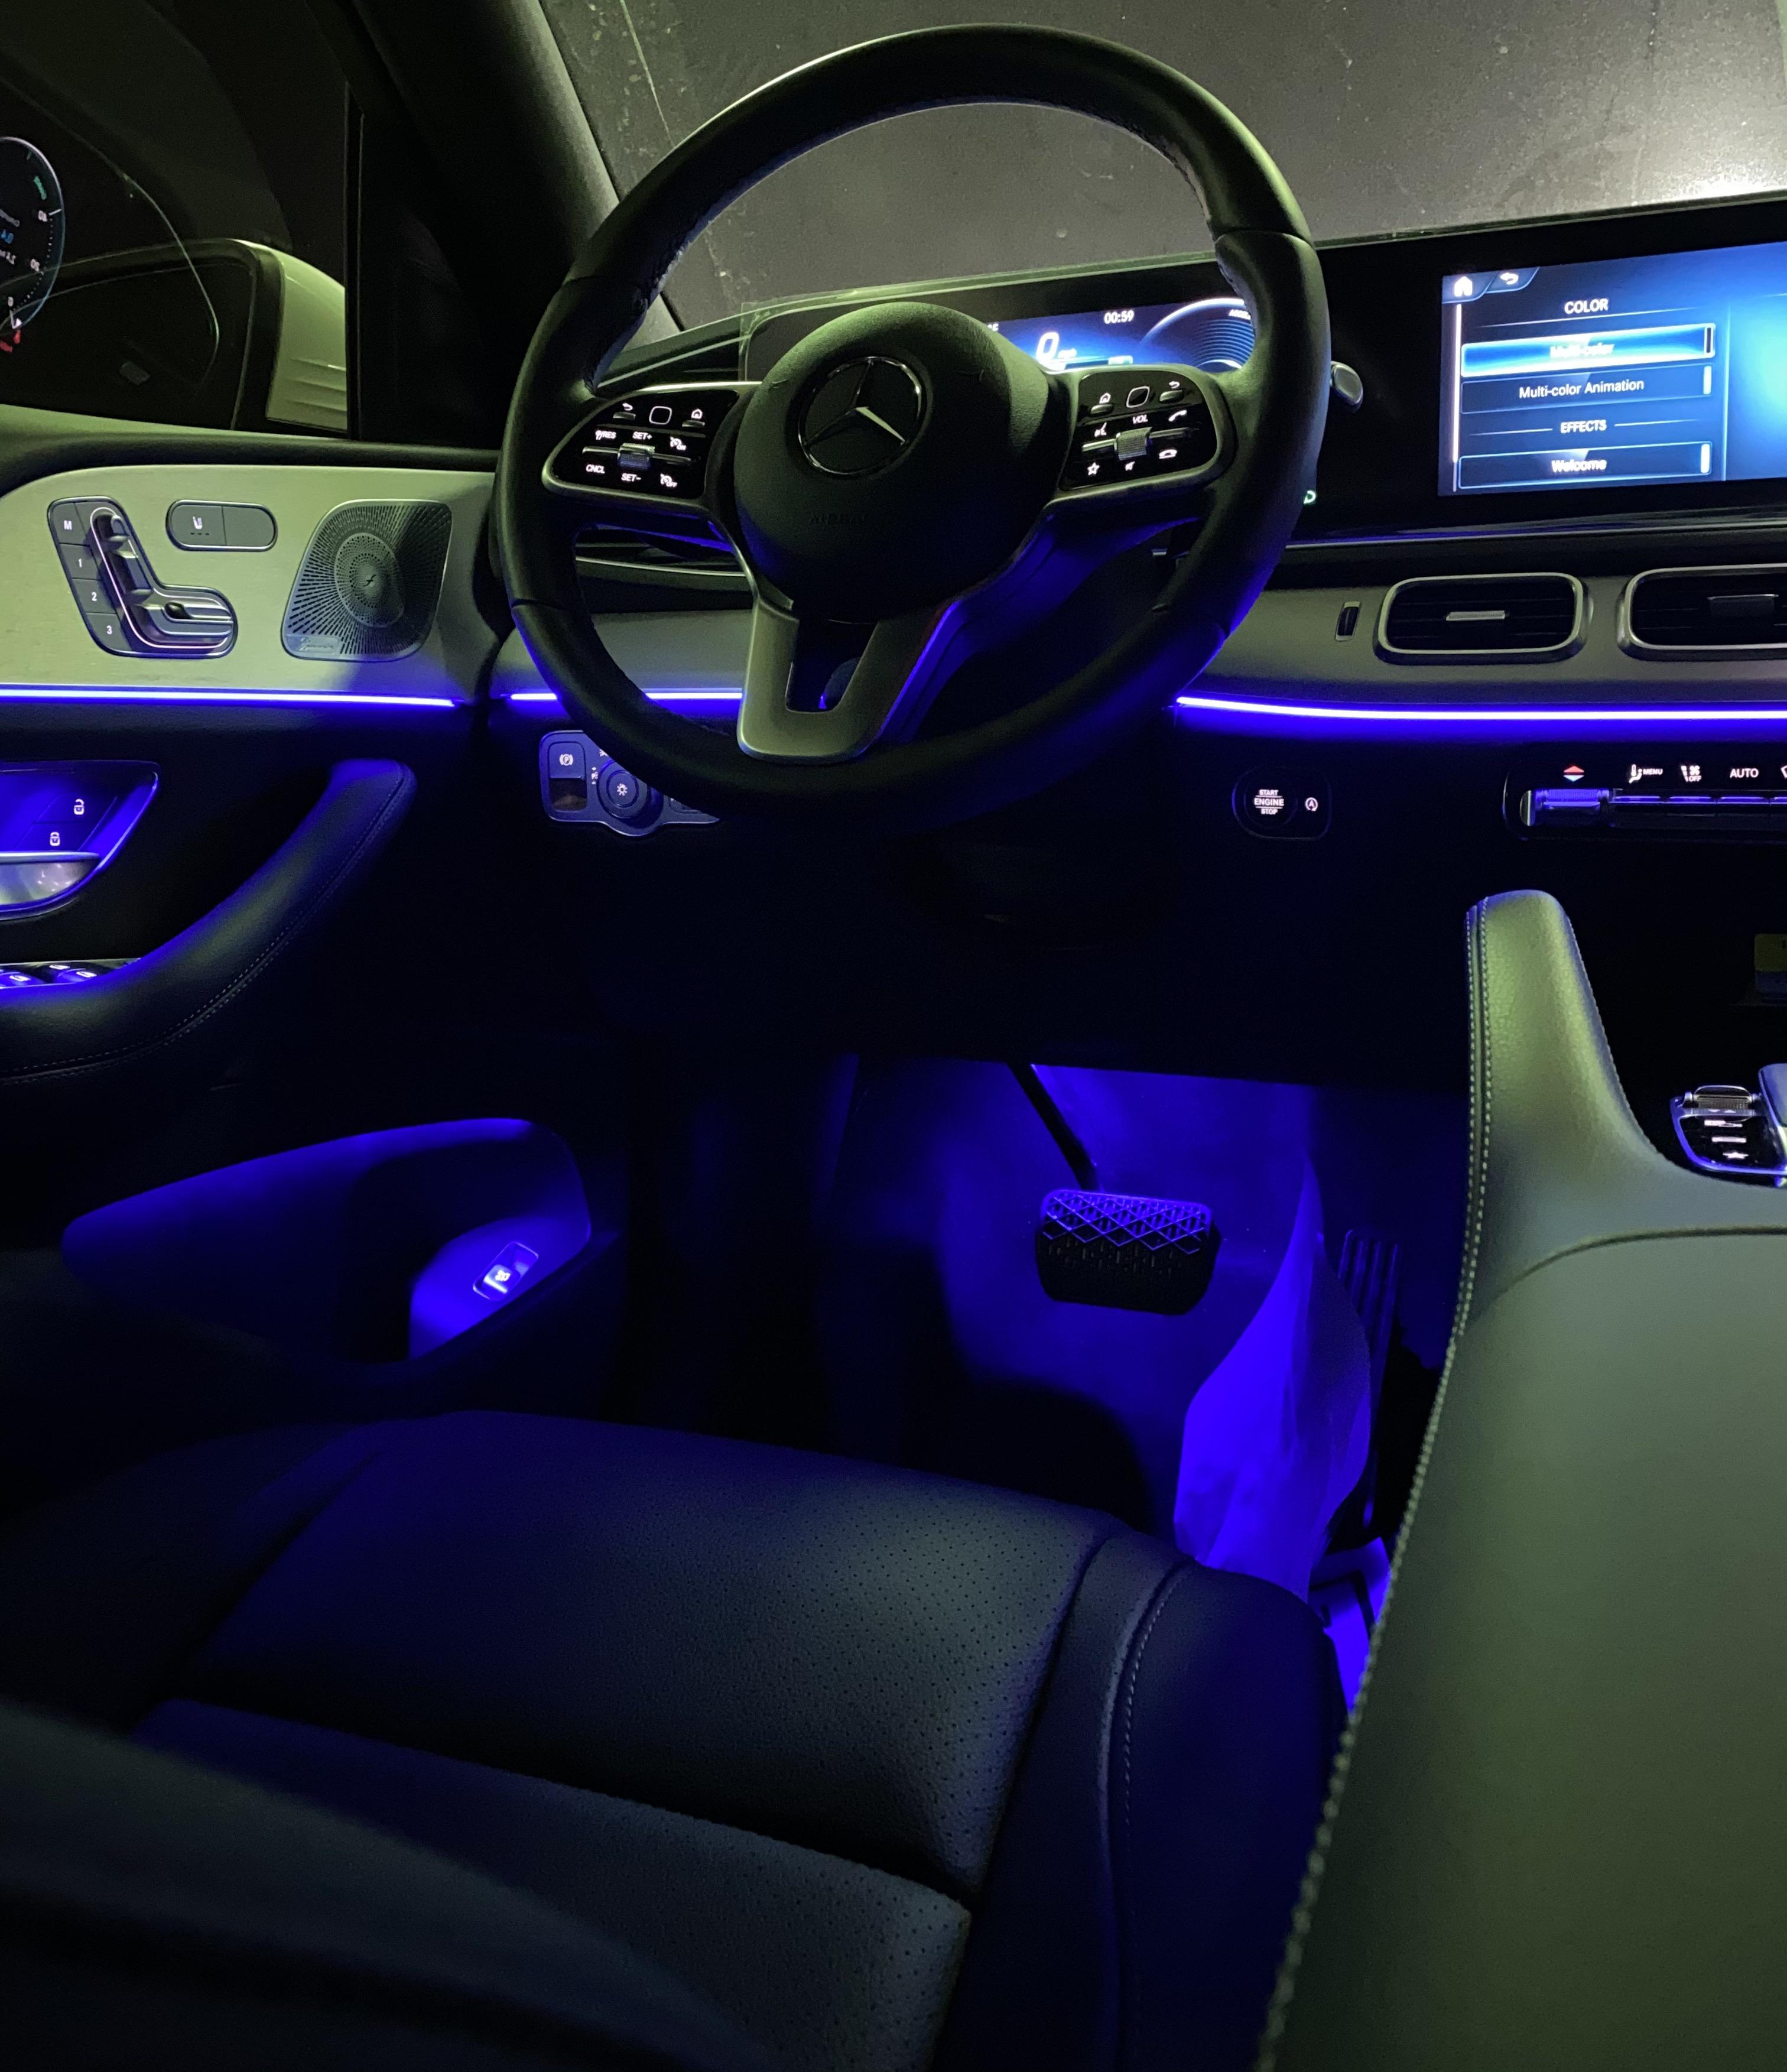 2020 gle350 the ambient lighting